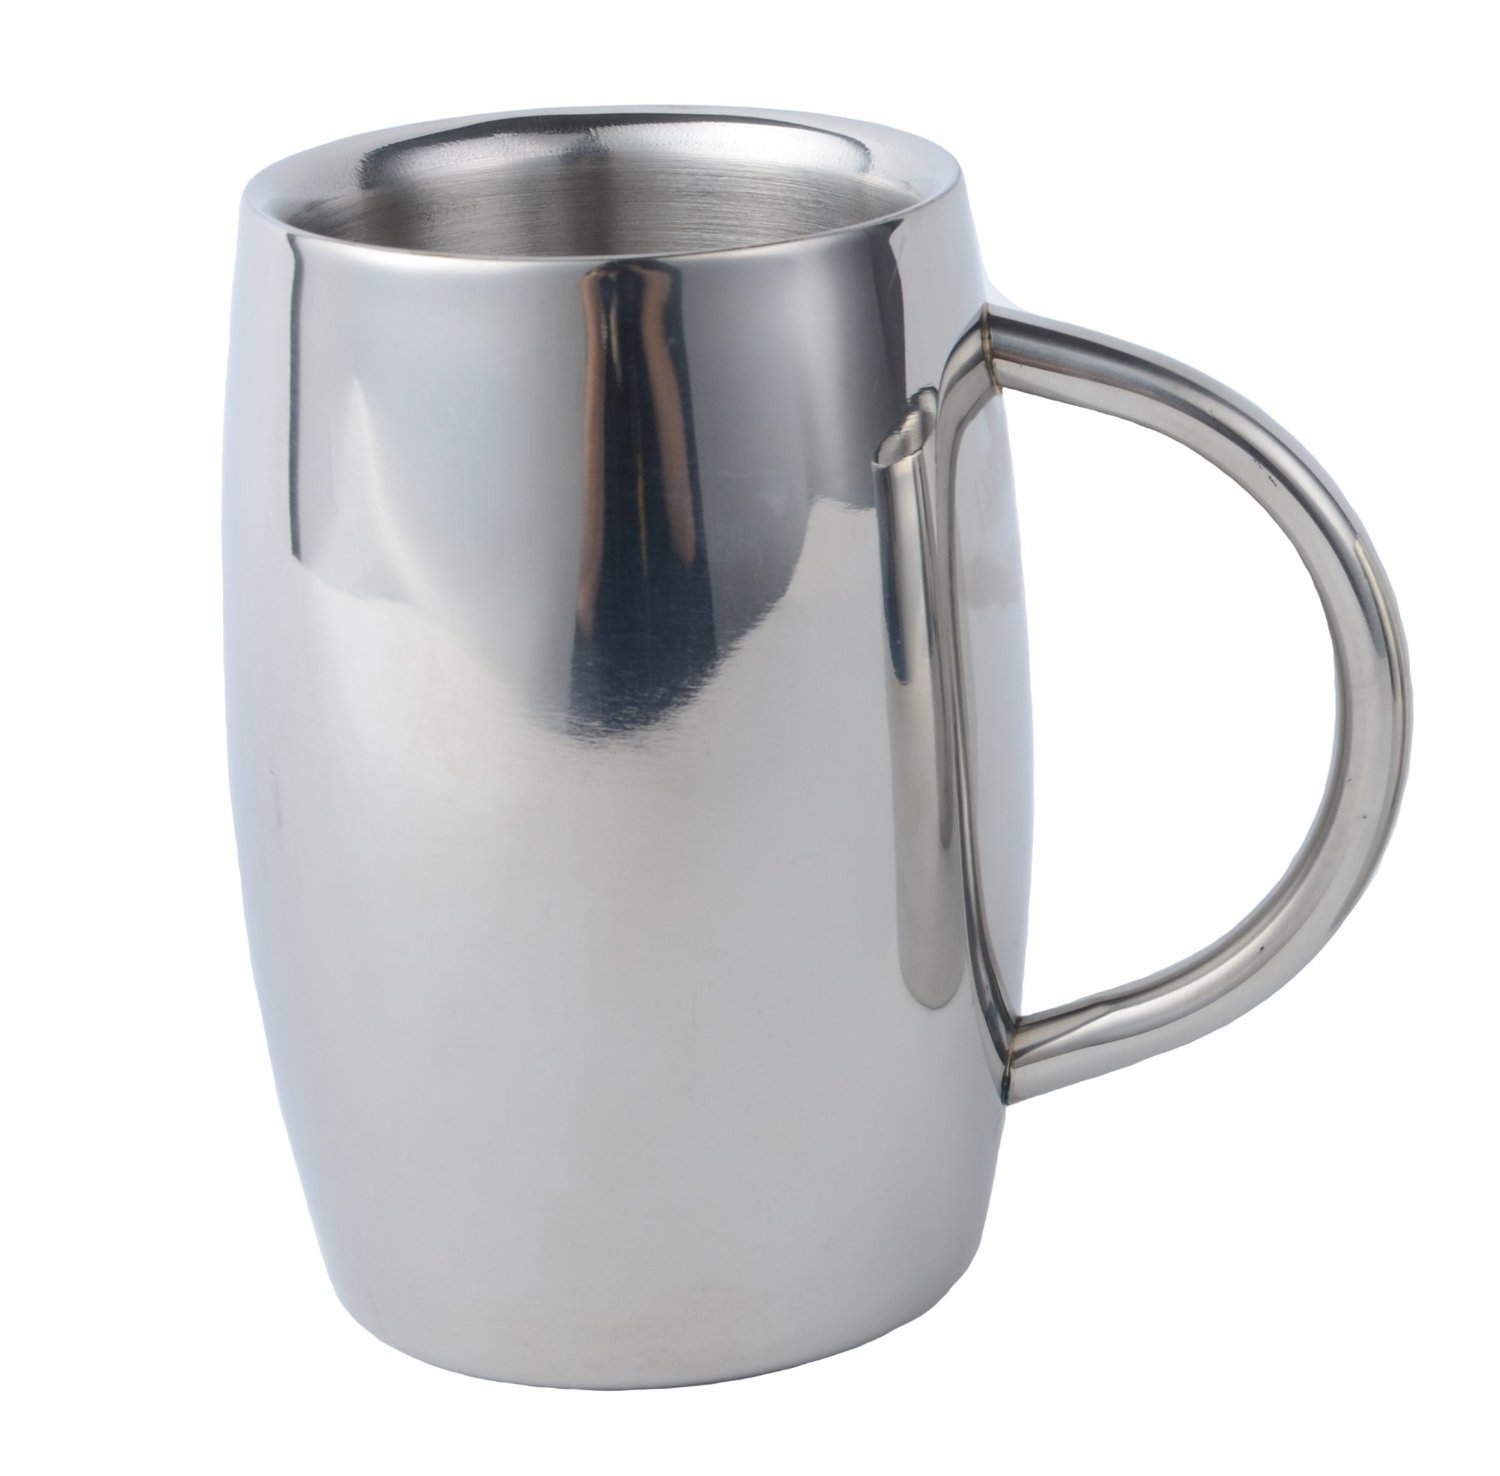 Braveness Stainless Steel Beer Mug Keep Your Beer Colder & Coffee Hotter Longer Than Any... by